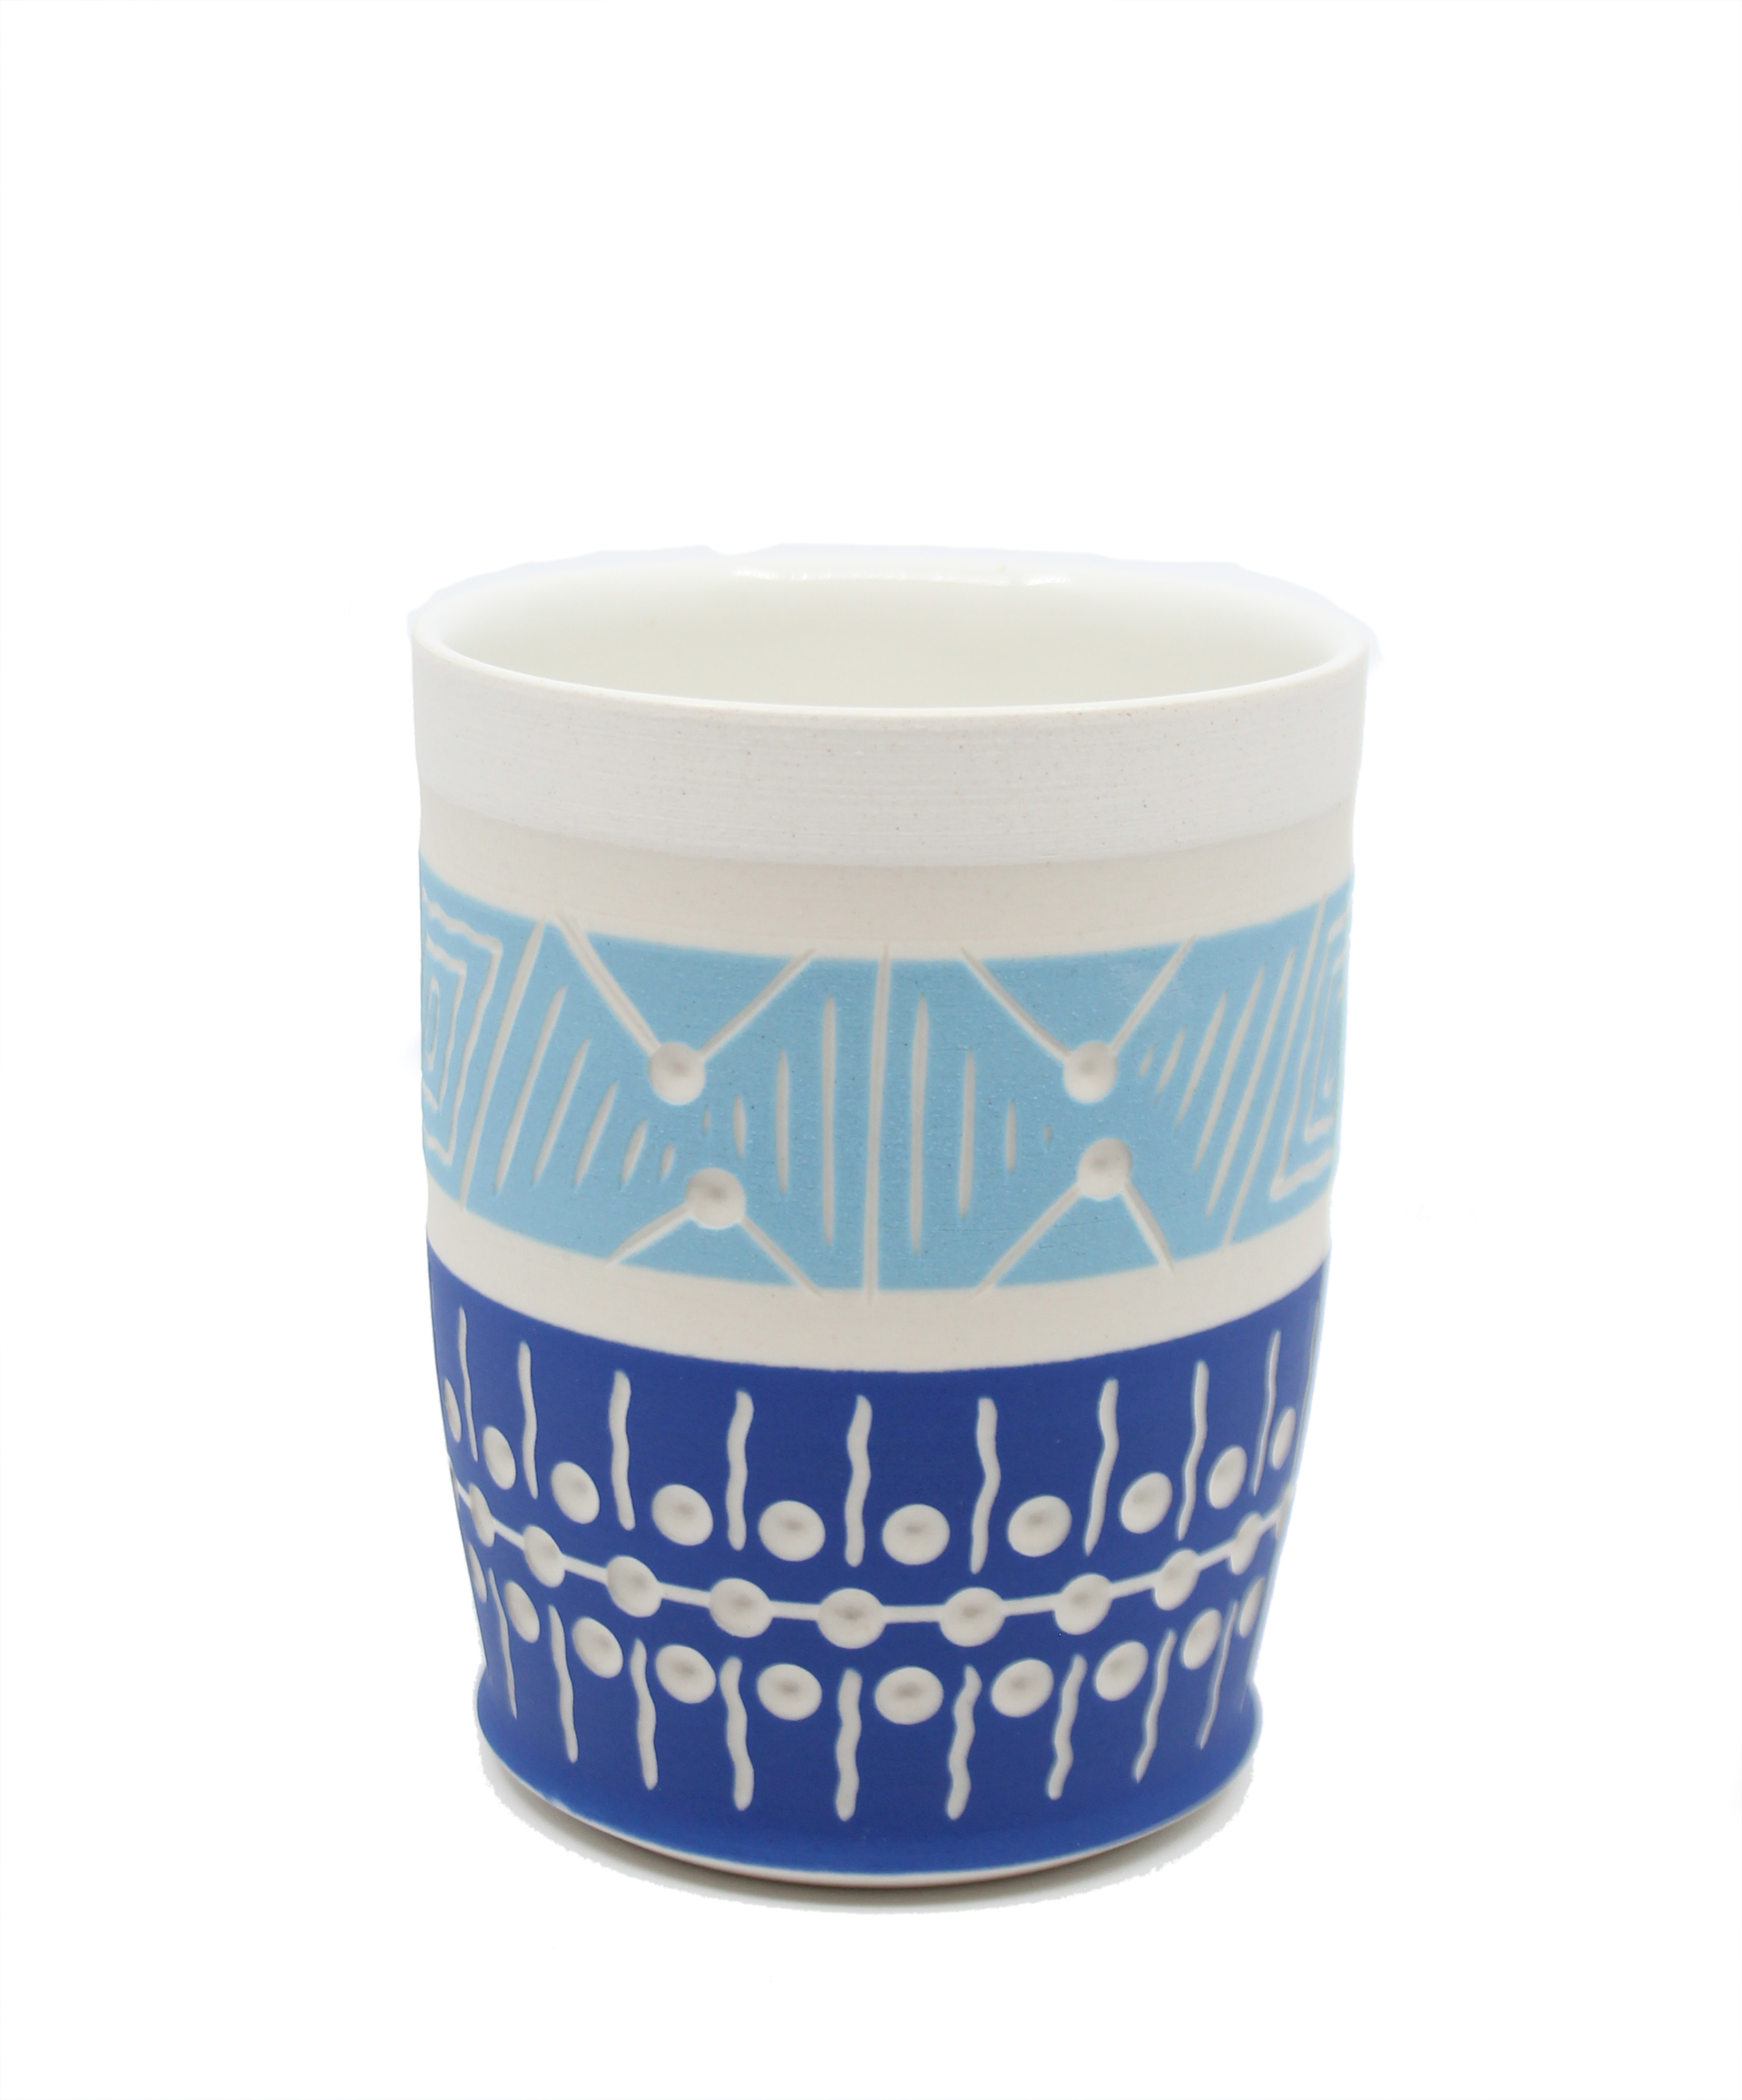 Blue & White Cup by Chris Casey